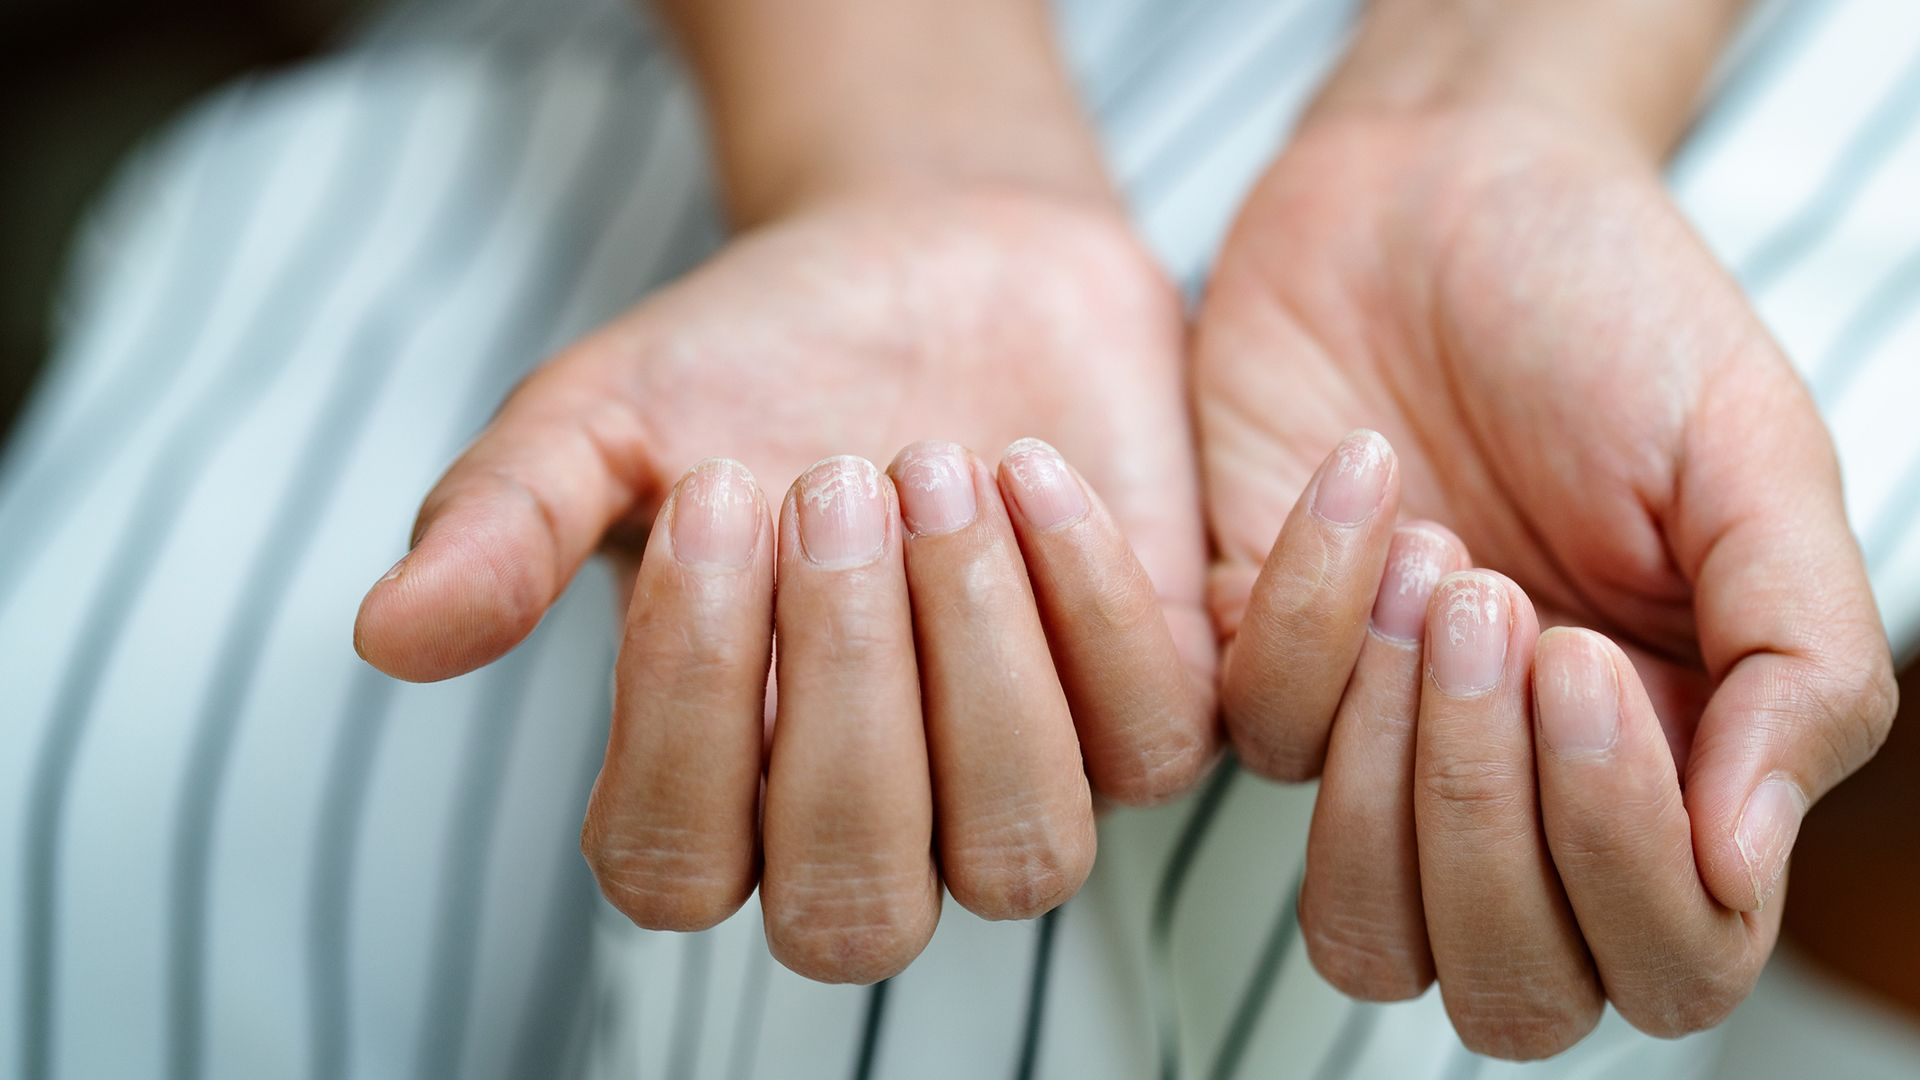 Healthy Hand And Foot Care Tips For Psoriatic Arthritis Sharecare